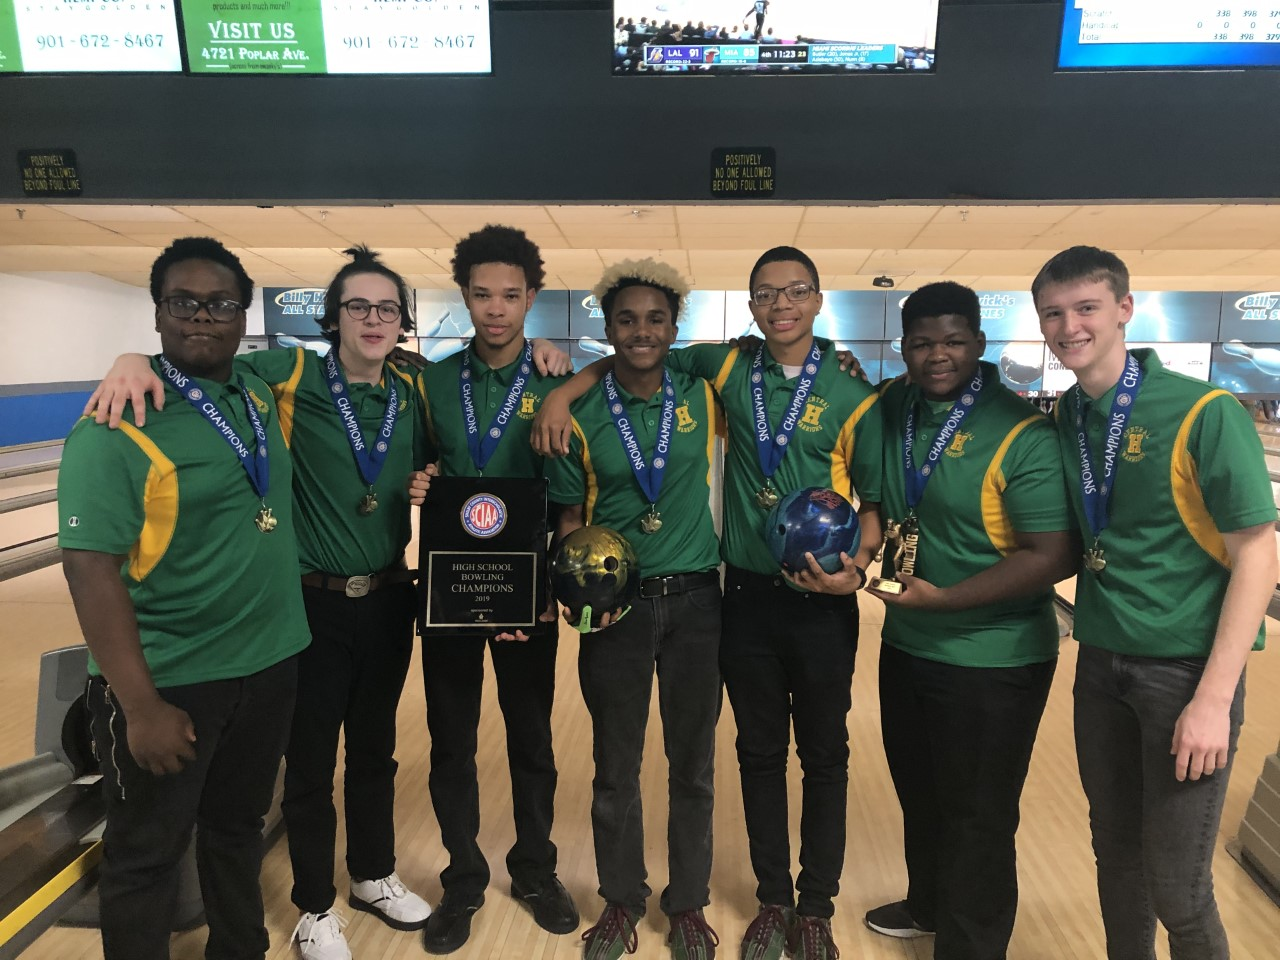 The Boys Bowling Team Captures The SCIAA Championship